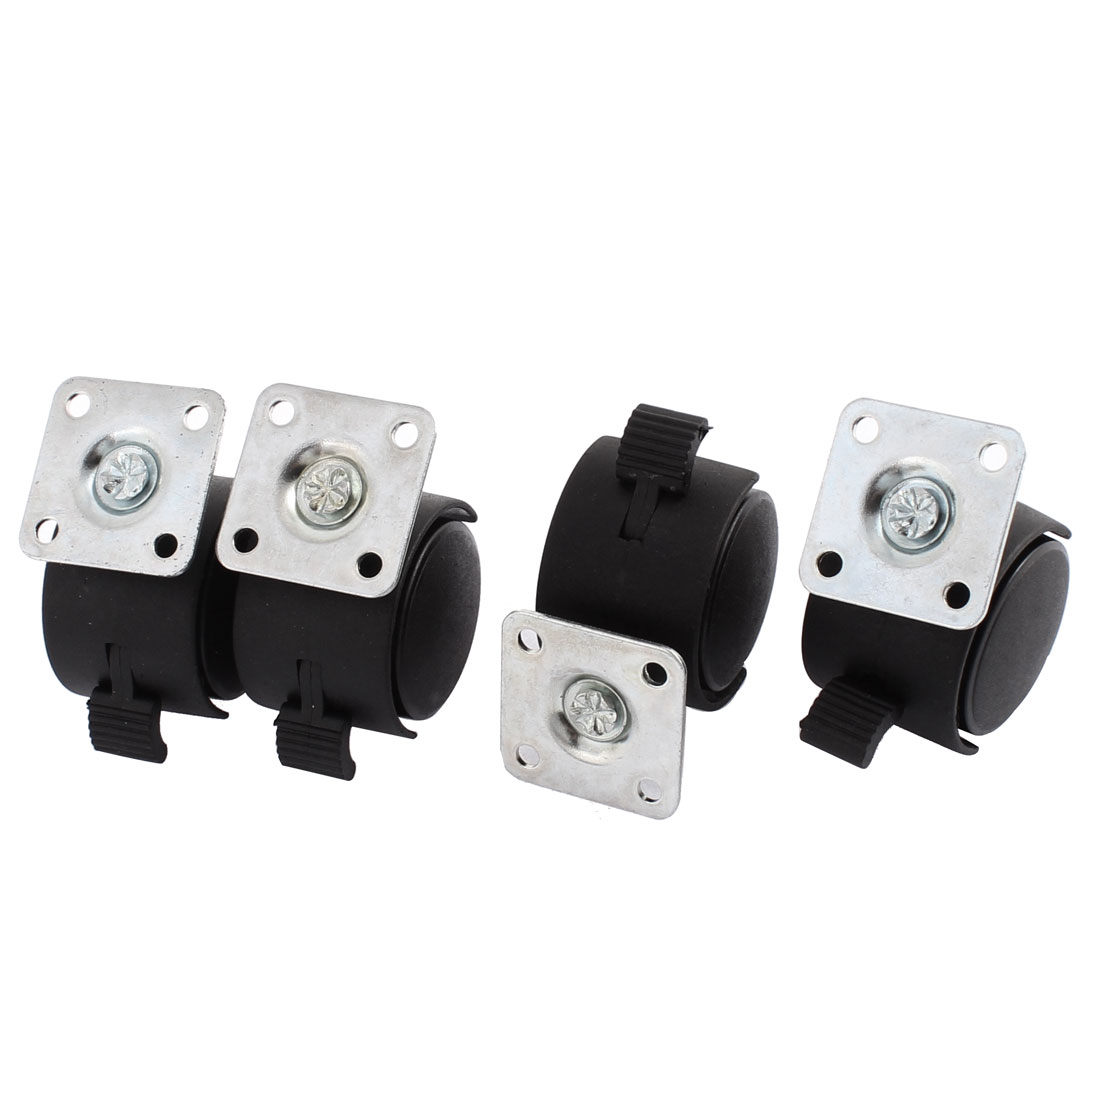 Chair 1.5 Inch Dia Wheel Square Top Plate Mount Swivel Brake Caster 4 Pcs